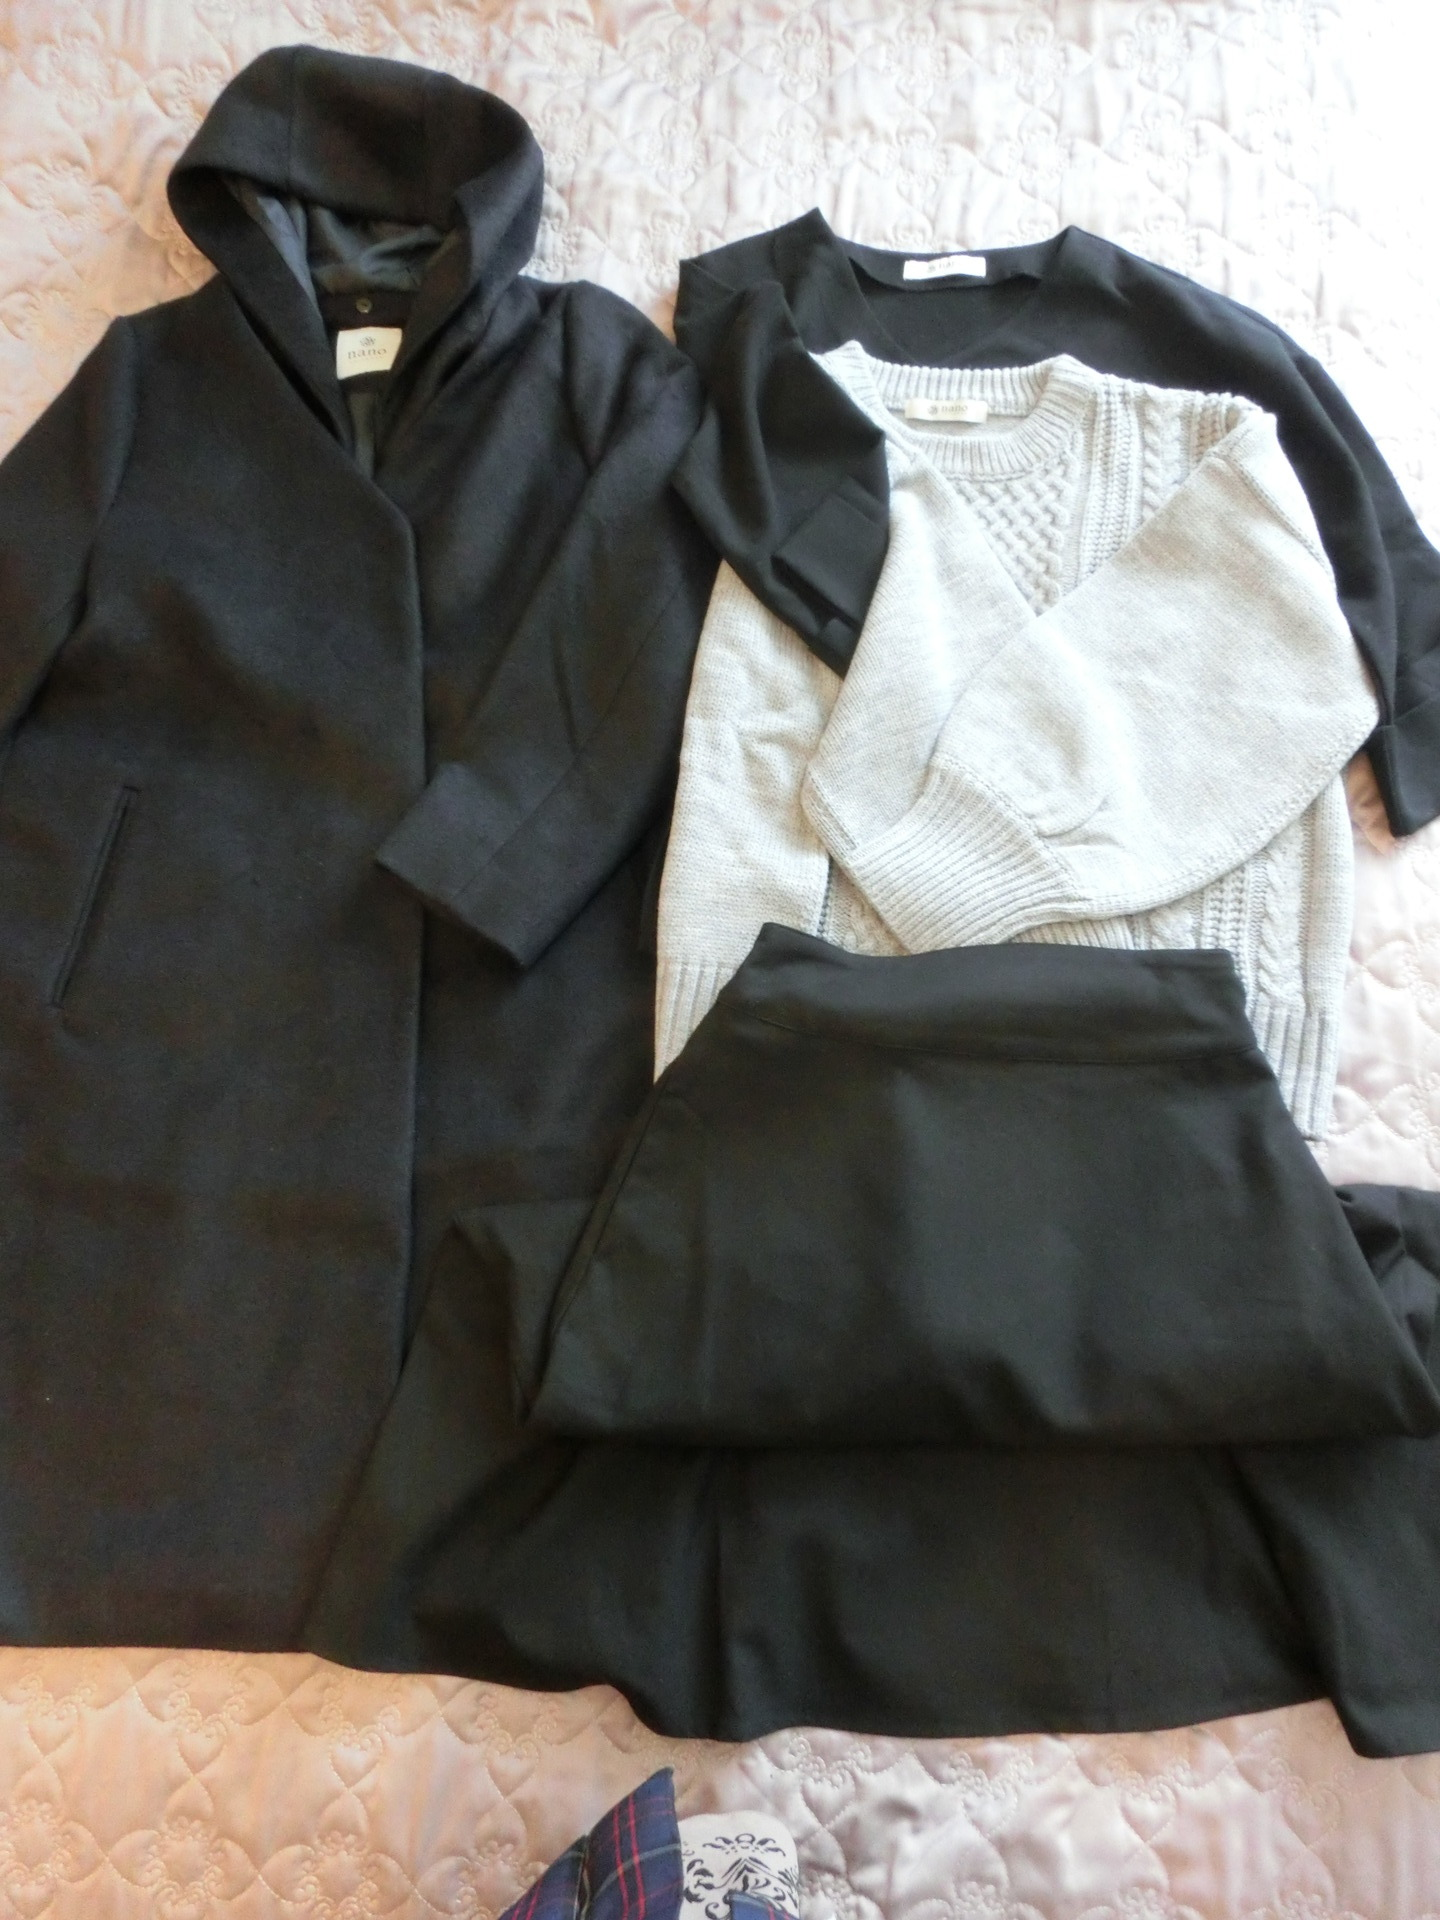 24d32300bad28 お洋服の爆買い - with SMILE(  -  ) - サンキュ!主婦ブログ 料理・節約 ...